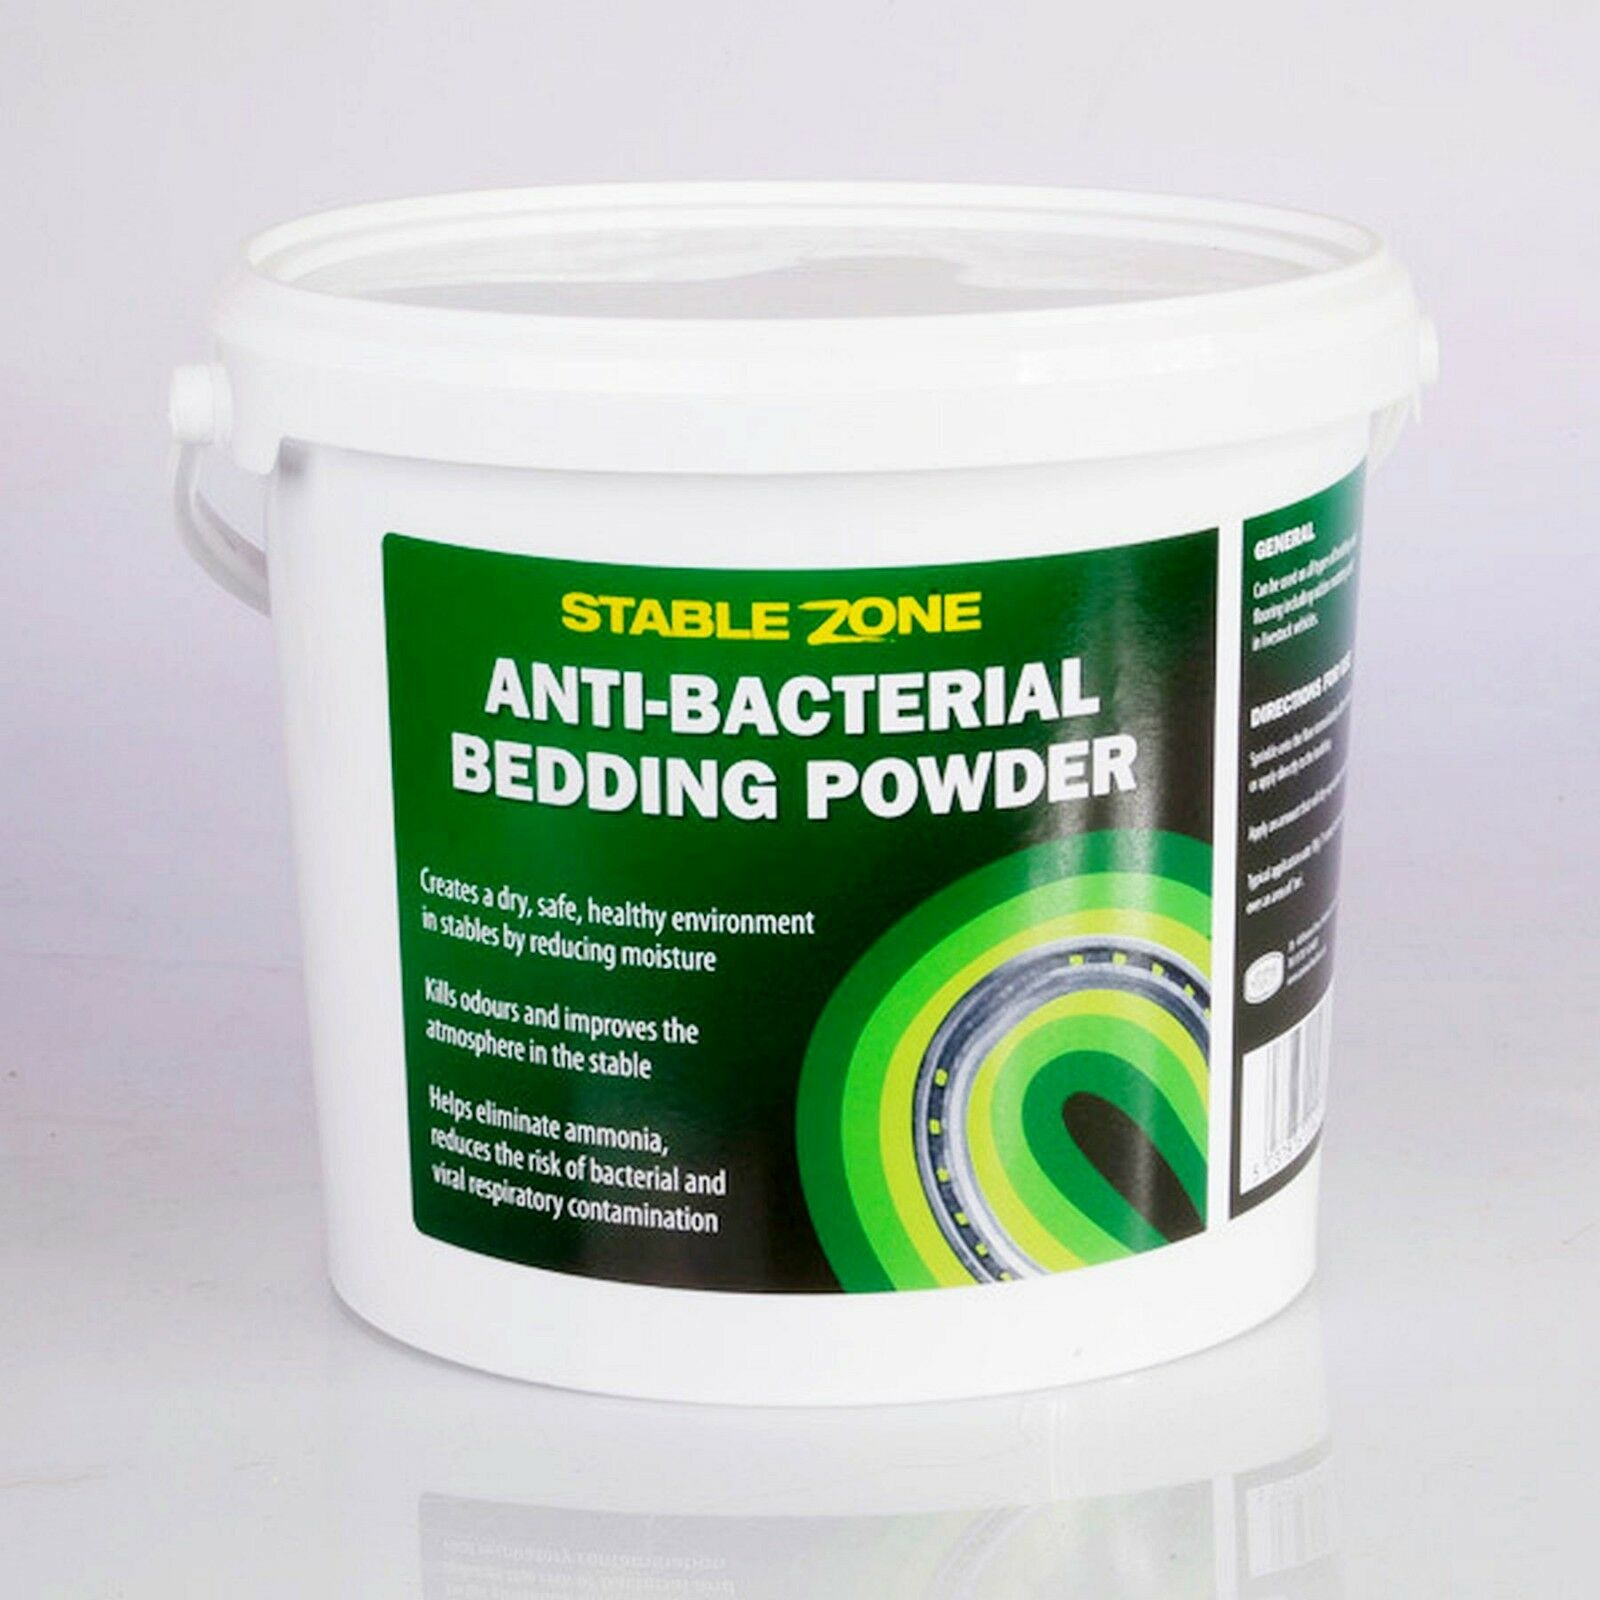 Stable Zone Horse Antibacterial Bedding Powder for Cleaner Air Next Day Delivery